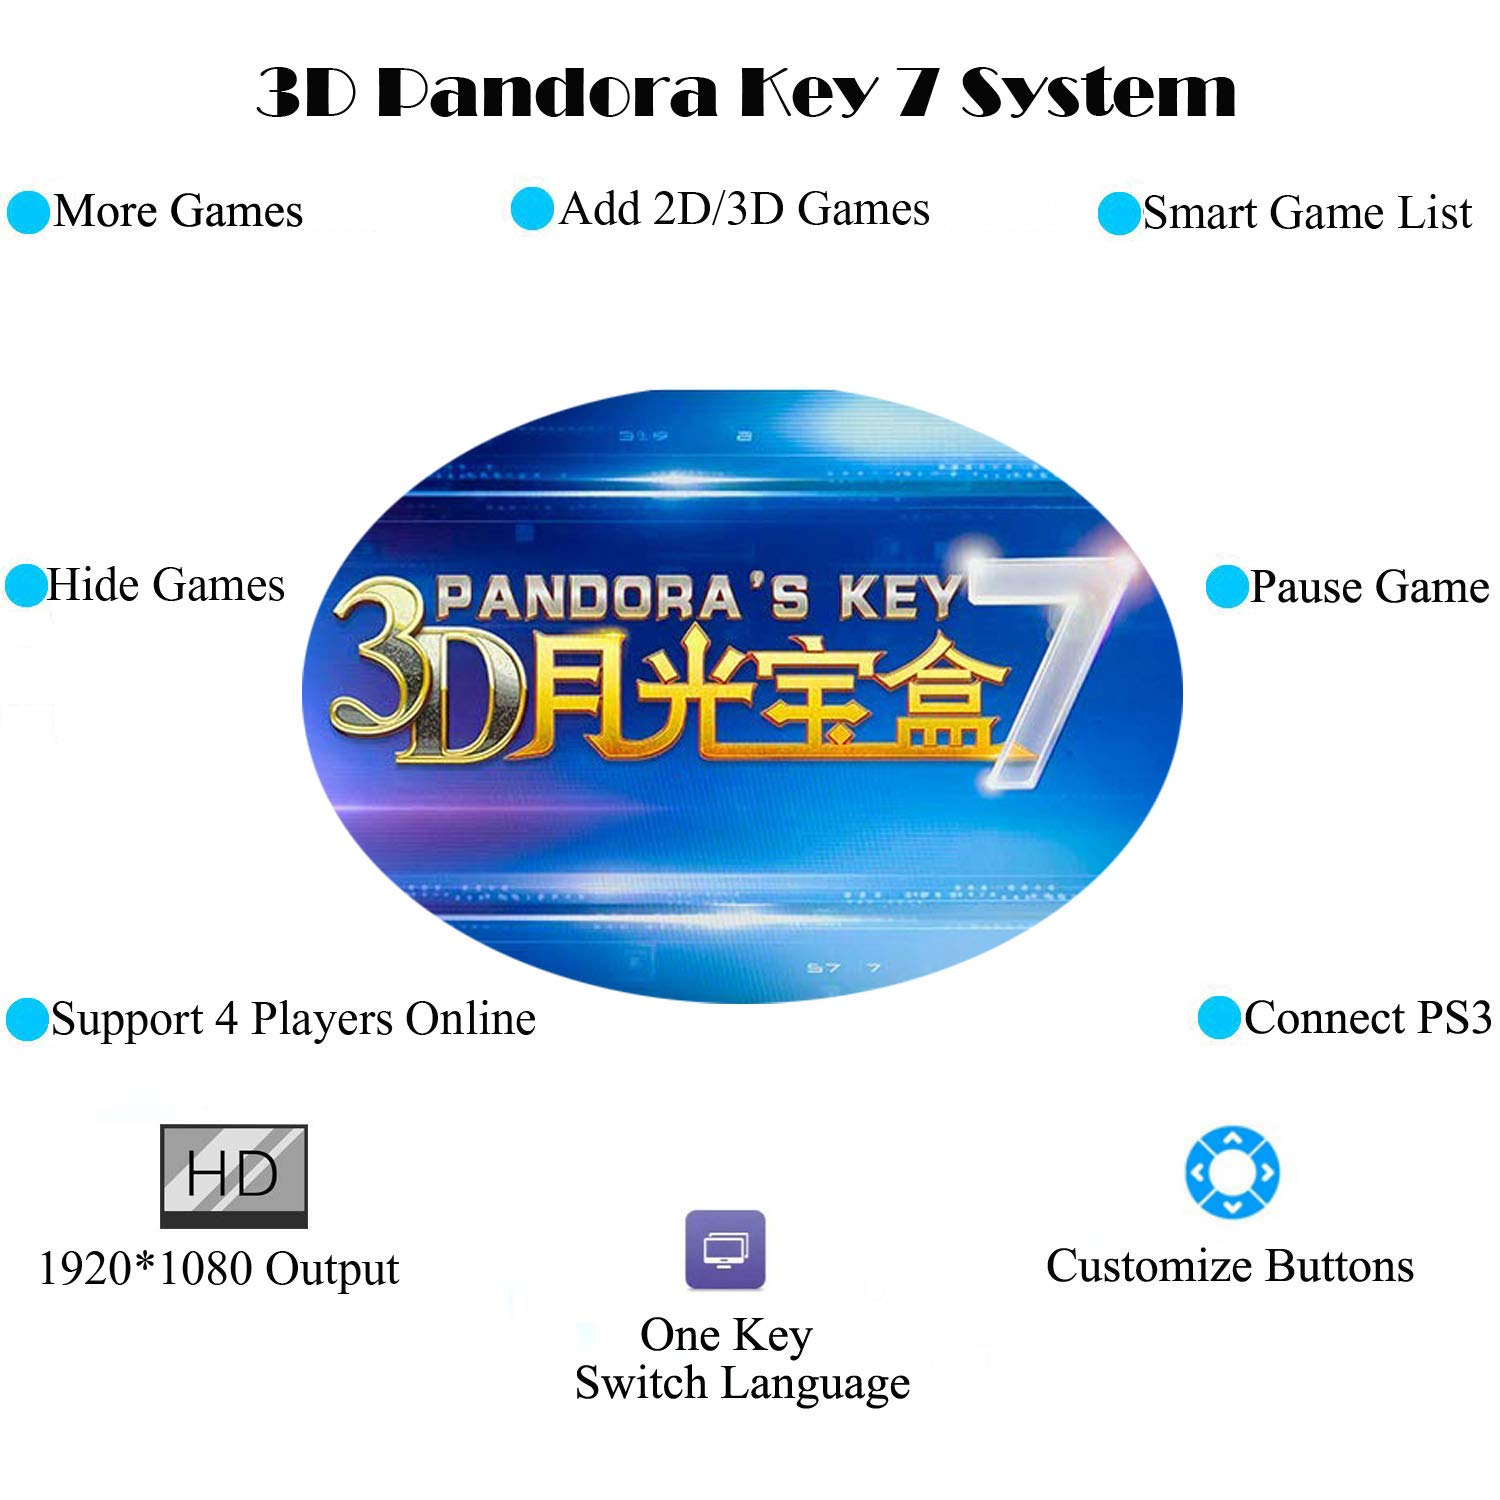 3D Pandora Key 7 Arcade Game Console | 2413 Retro HD Games | Support 3D Games | Add More Games | Support 4 Players | Full HD (1920x1080) Video | 2 Player Game Controls | HDMI/VGA/USB/AUX Audio Output by HAAMIIQII (Image #2)